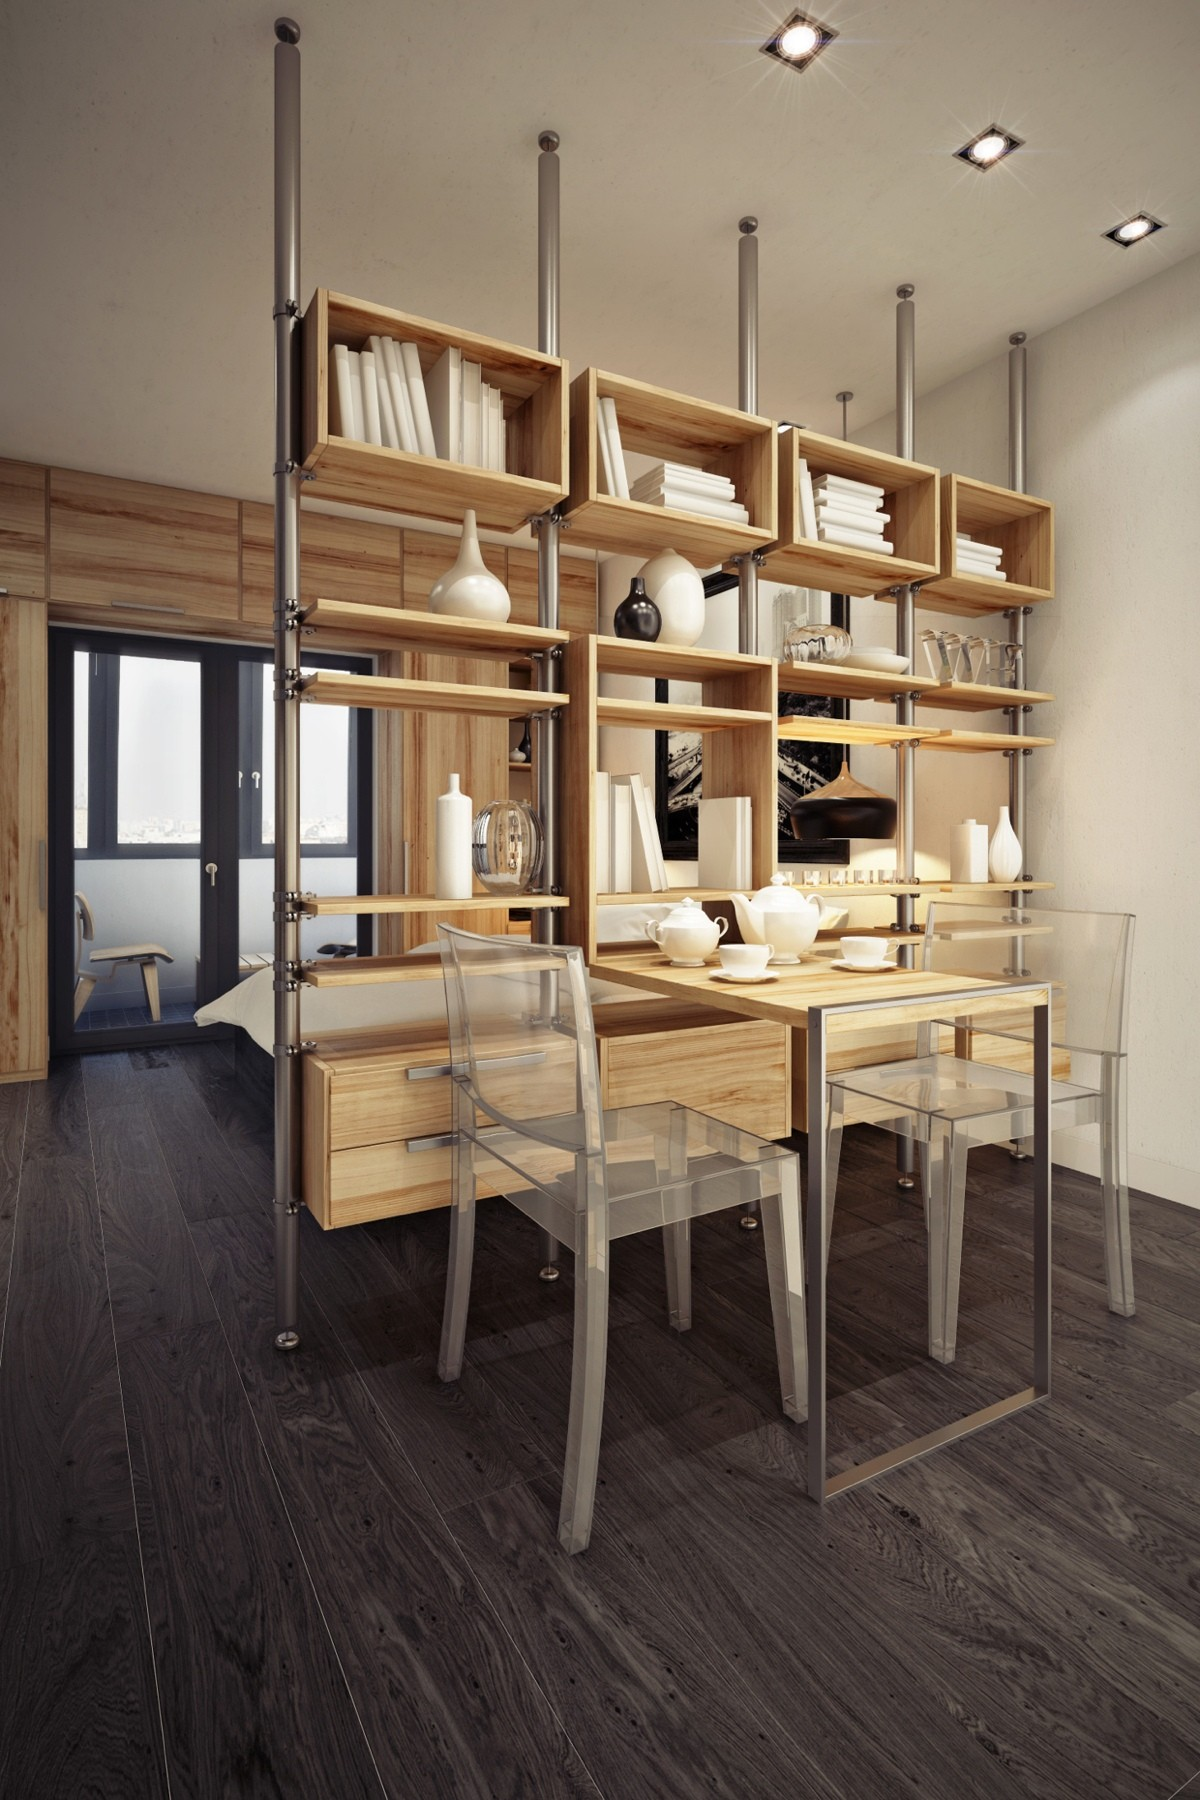 Urban apartment design style